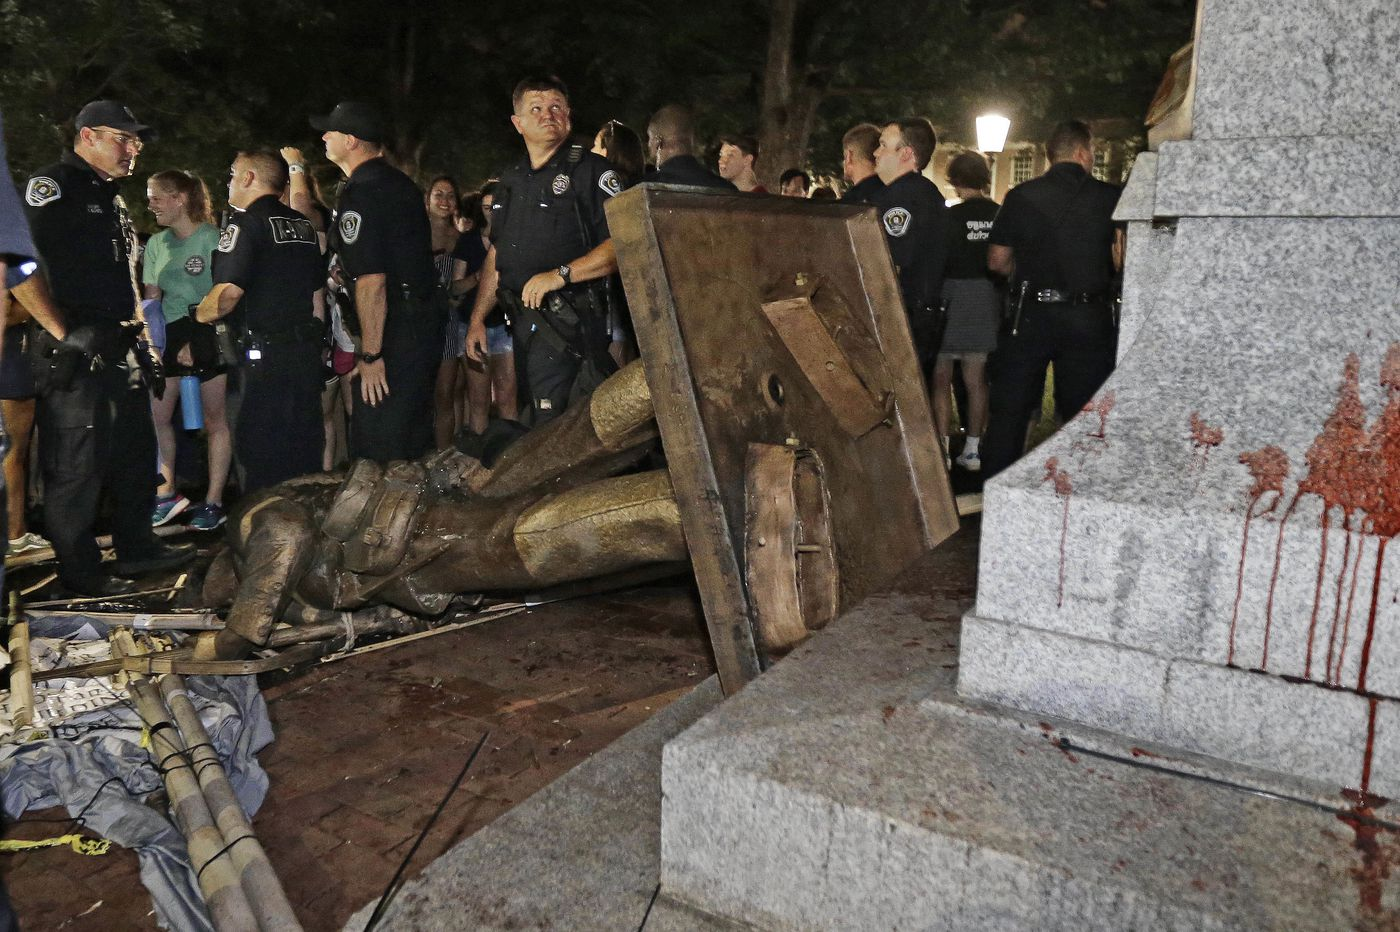 Uproar over UNC proposal for building for Confederate statue